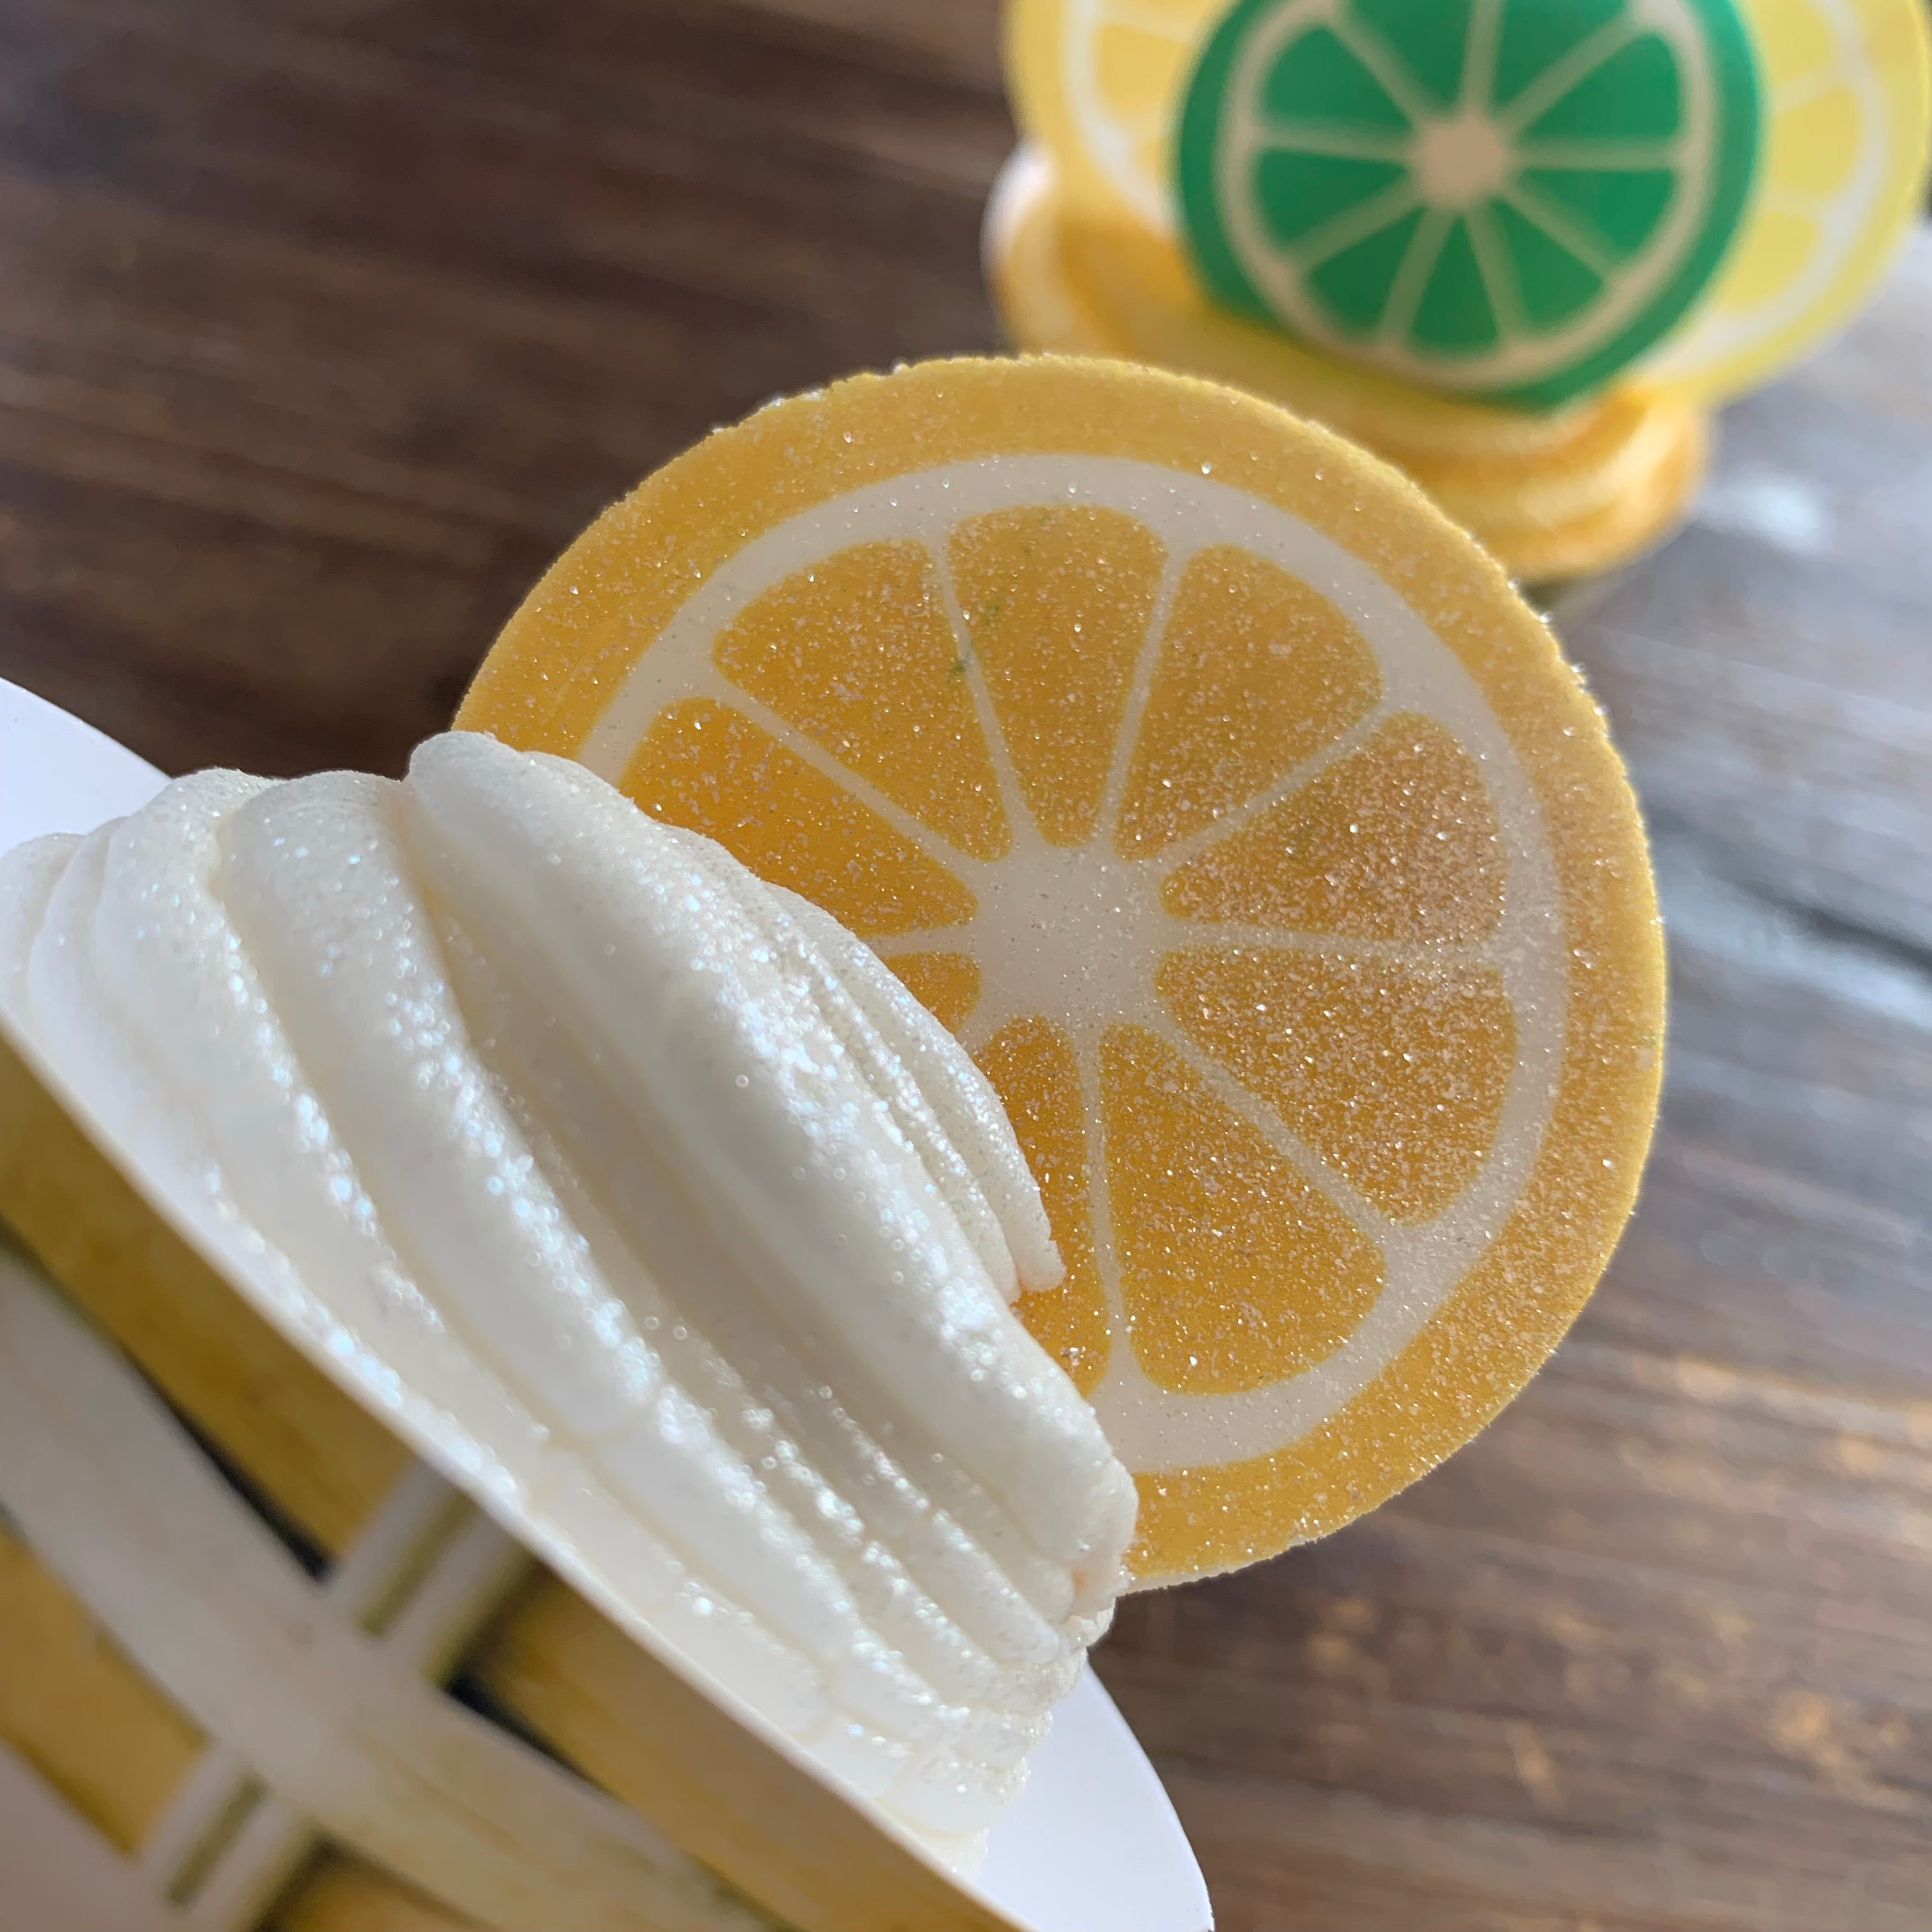 Citrus Lemon Lime Orange Wafer Paper Slices